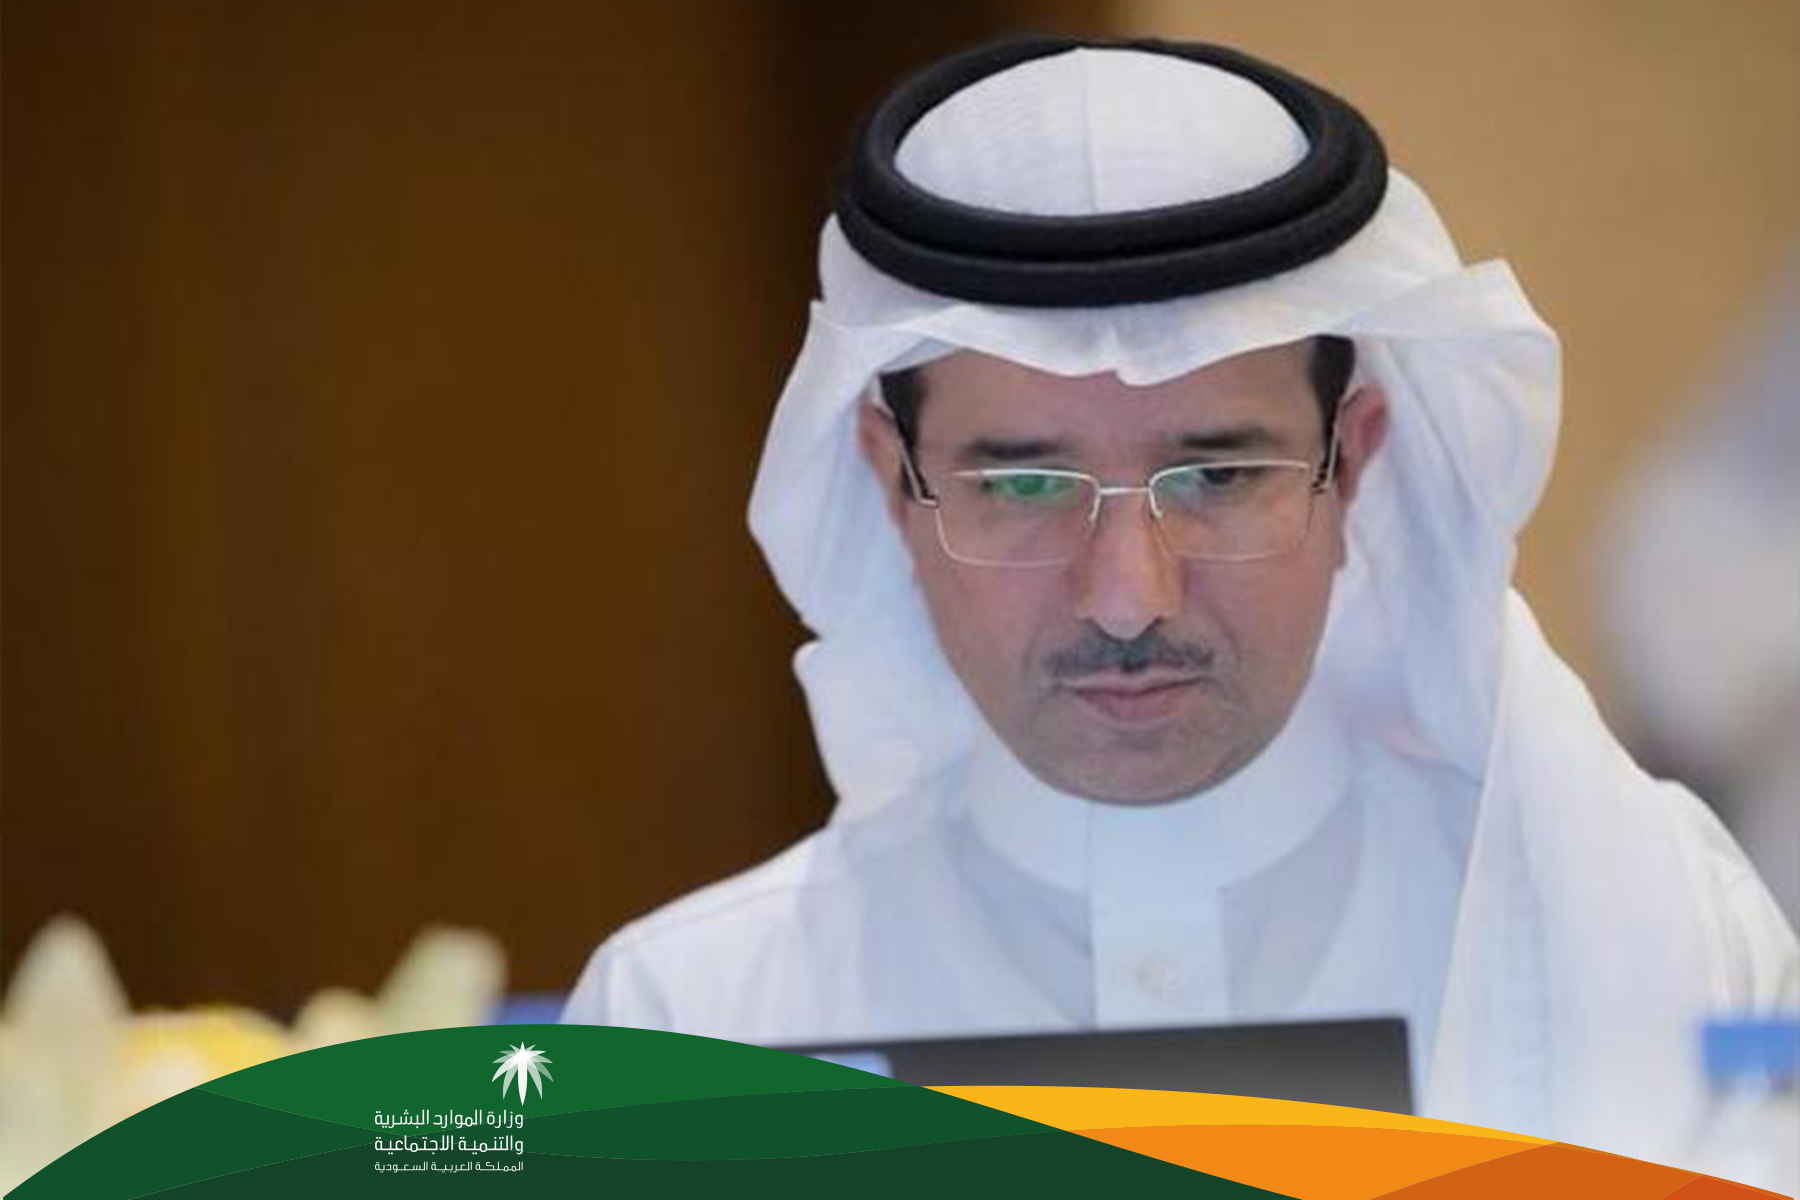 Saudi Vice Minister for Labor meets with the Special Assistant to the Pakistani PM for Expat Affairs to discuss supporting Pakistani labor during the Corona pandemic crisis